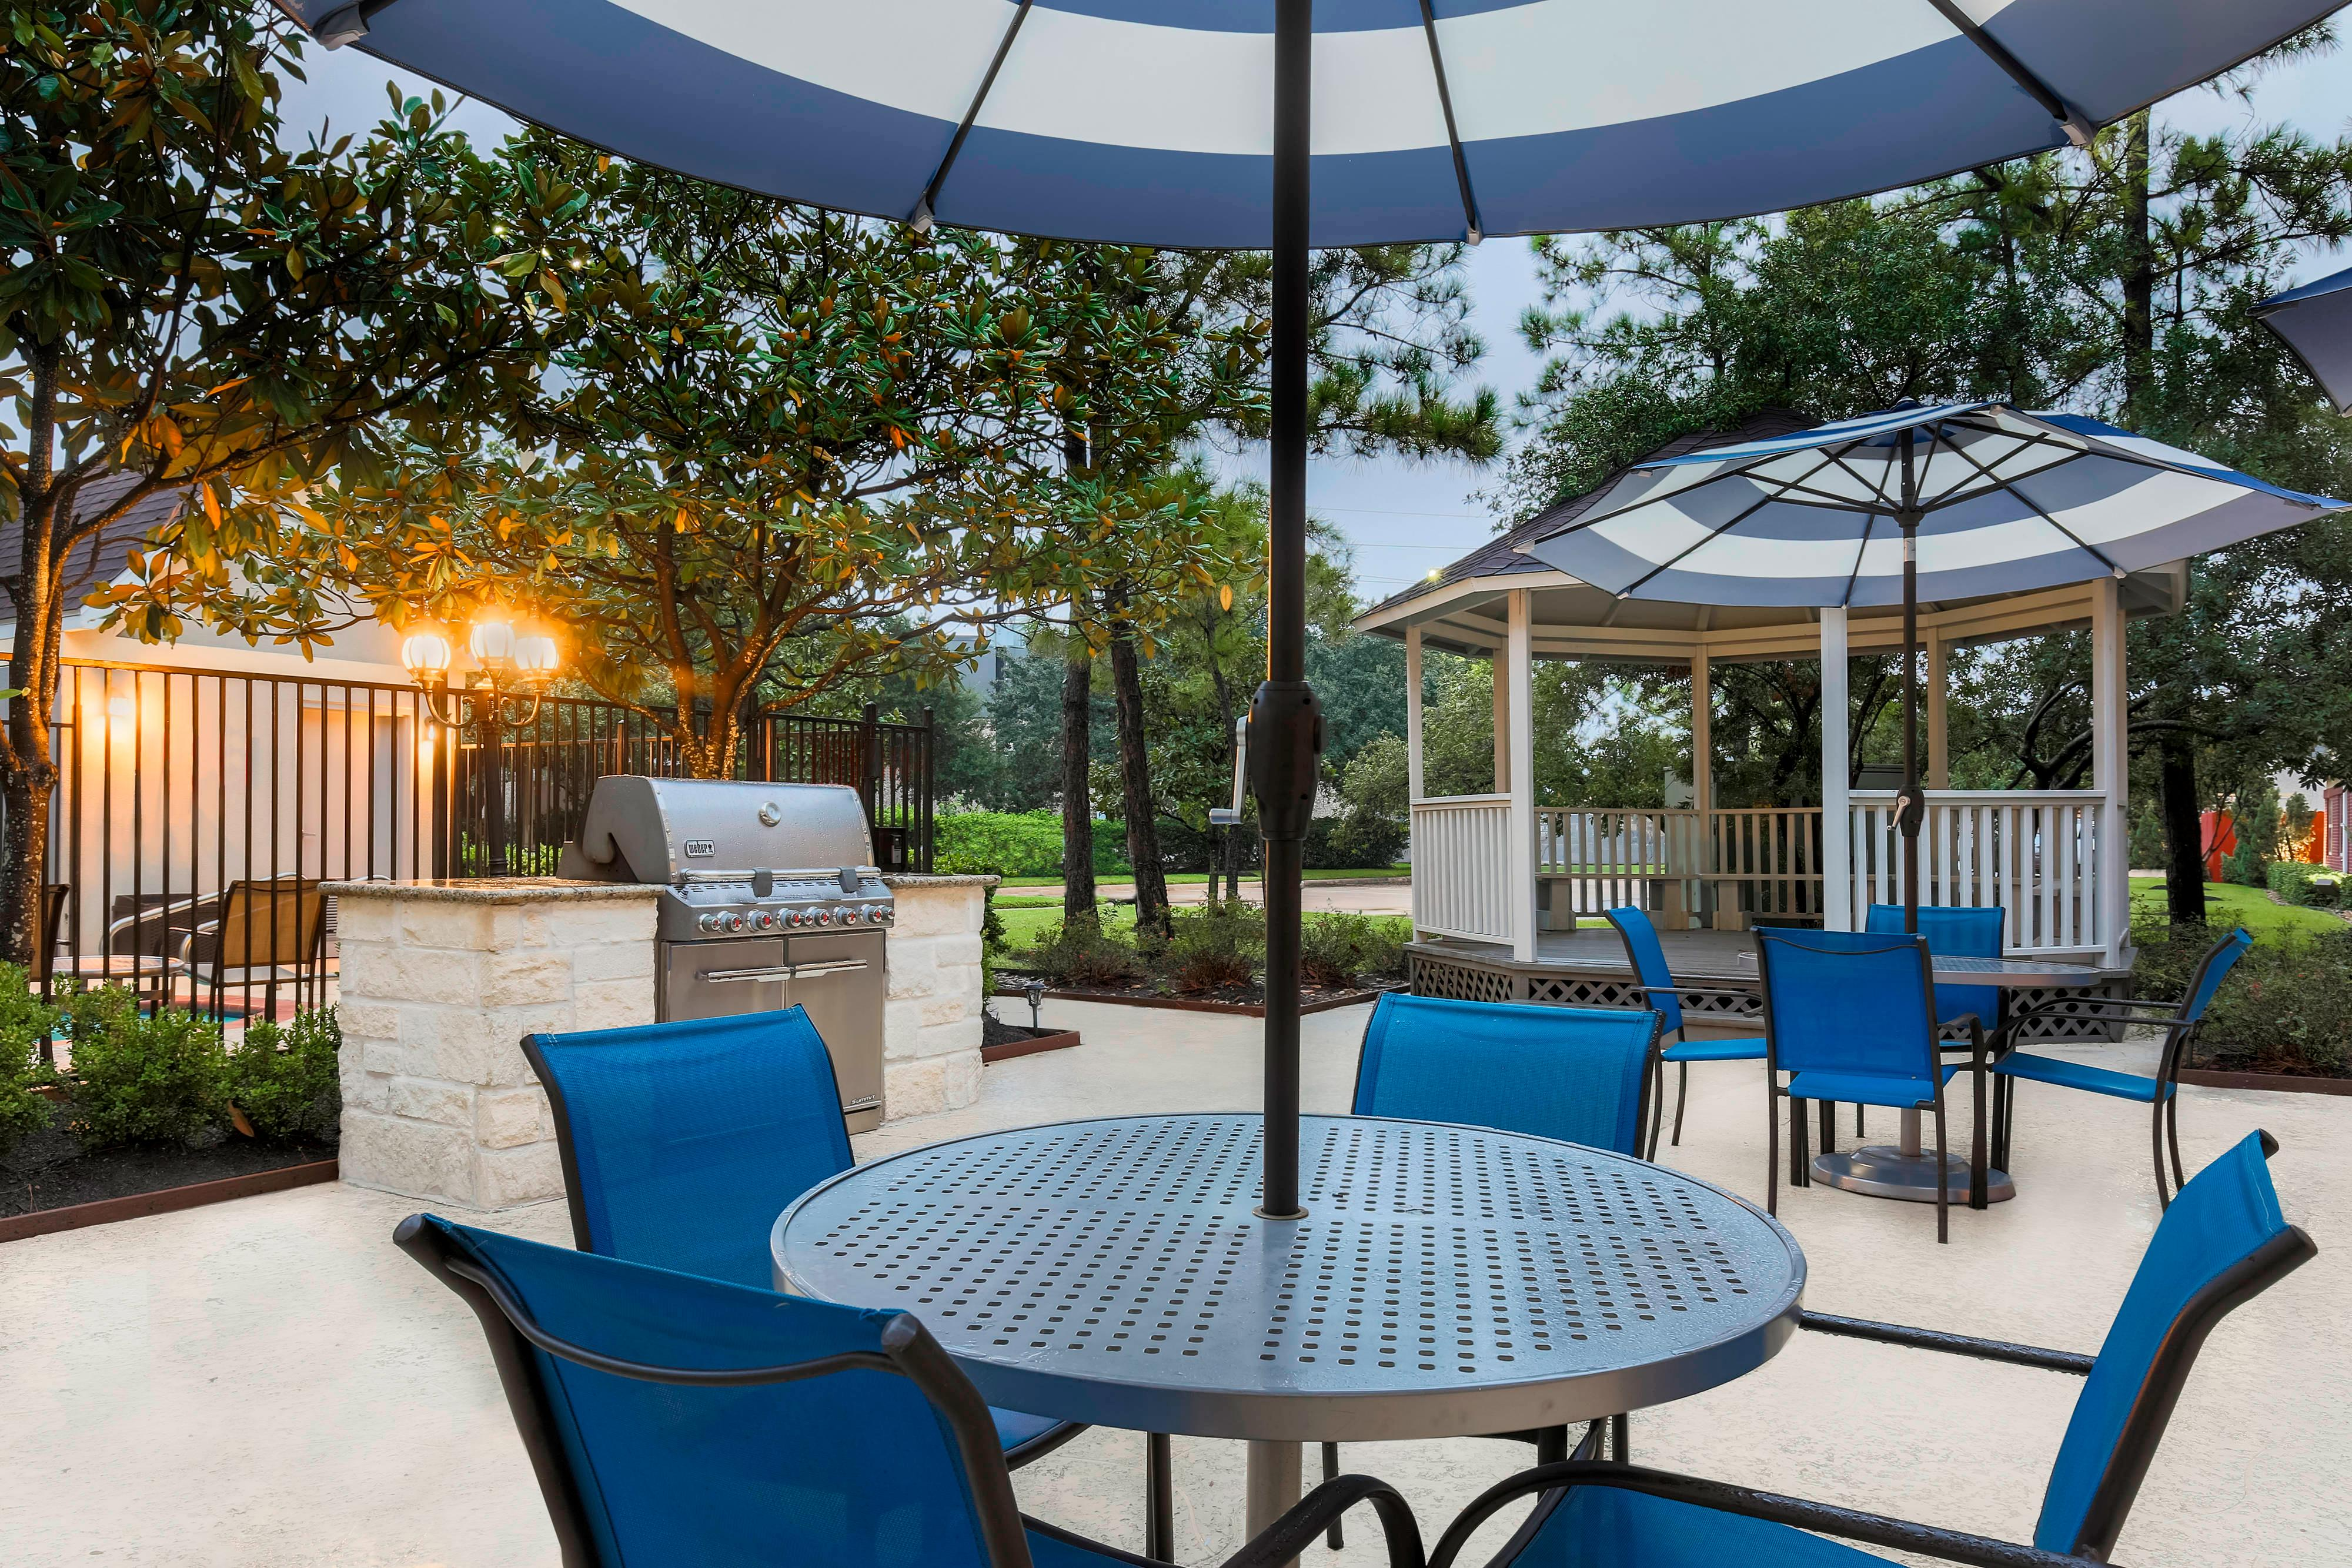 Towneplace Suites By Marriott Houston Brookhollow